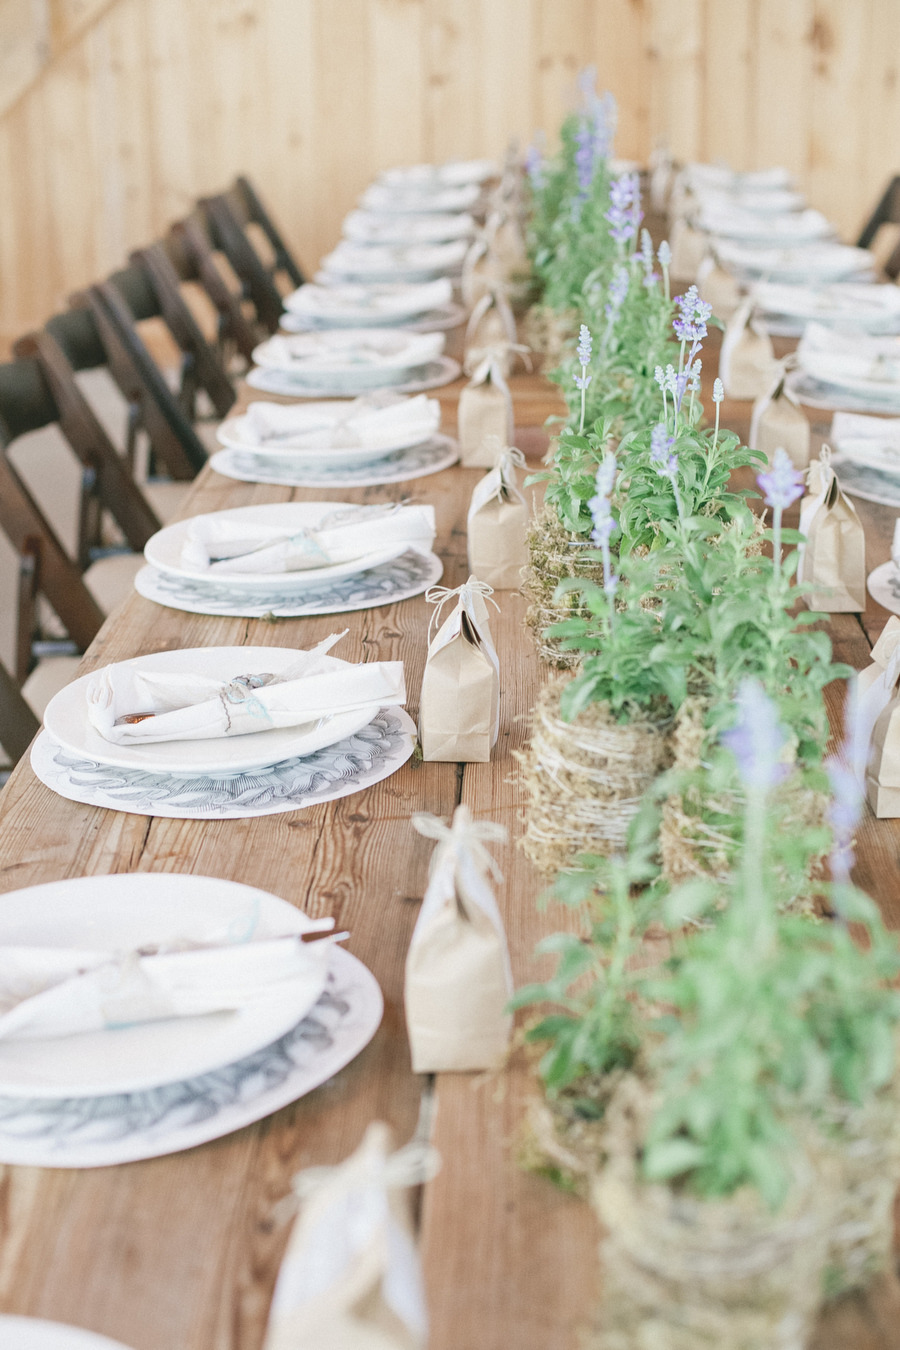 Paso Robles Wedding | Pots of herbs and muscari for relaxed centrepieces Photography by onelove photography / onelove-photo.com